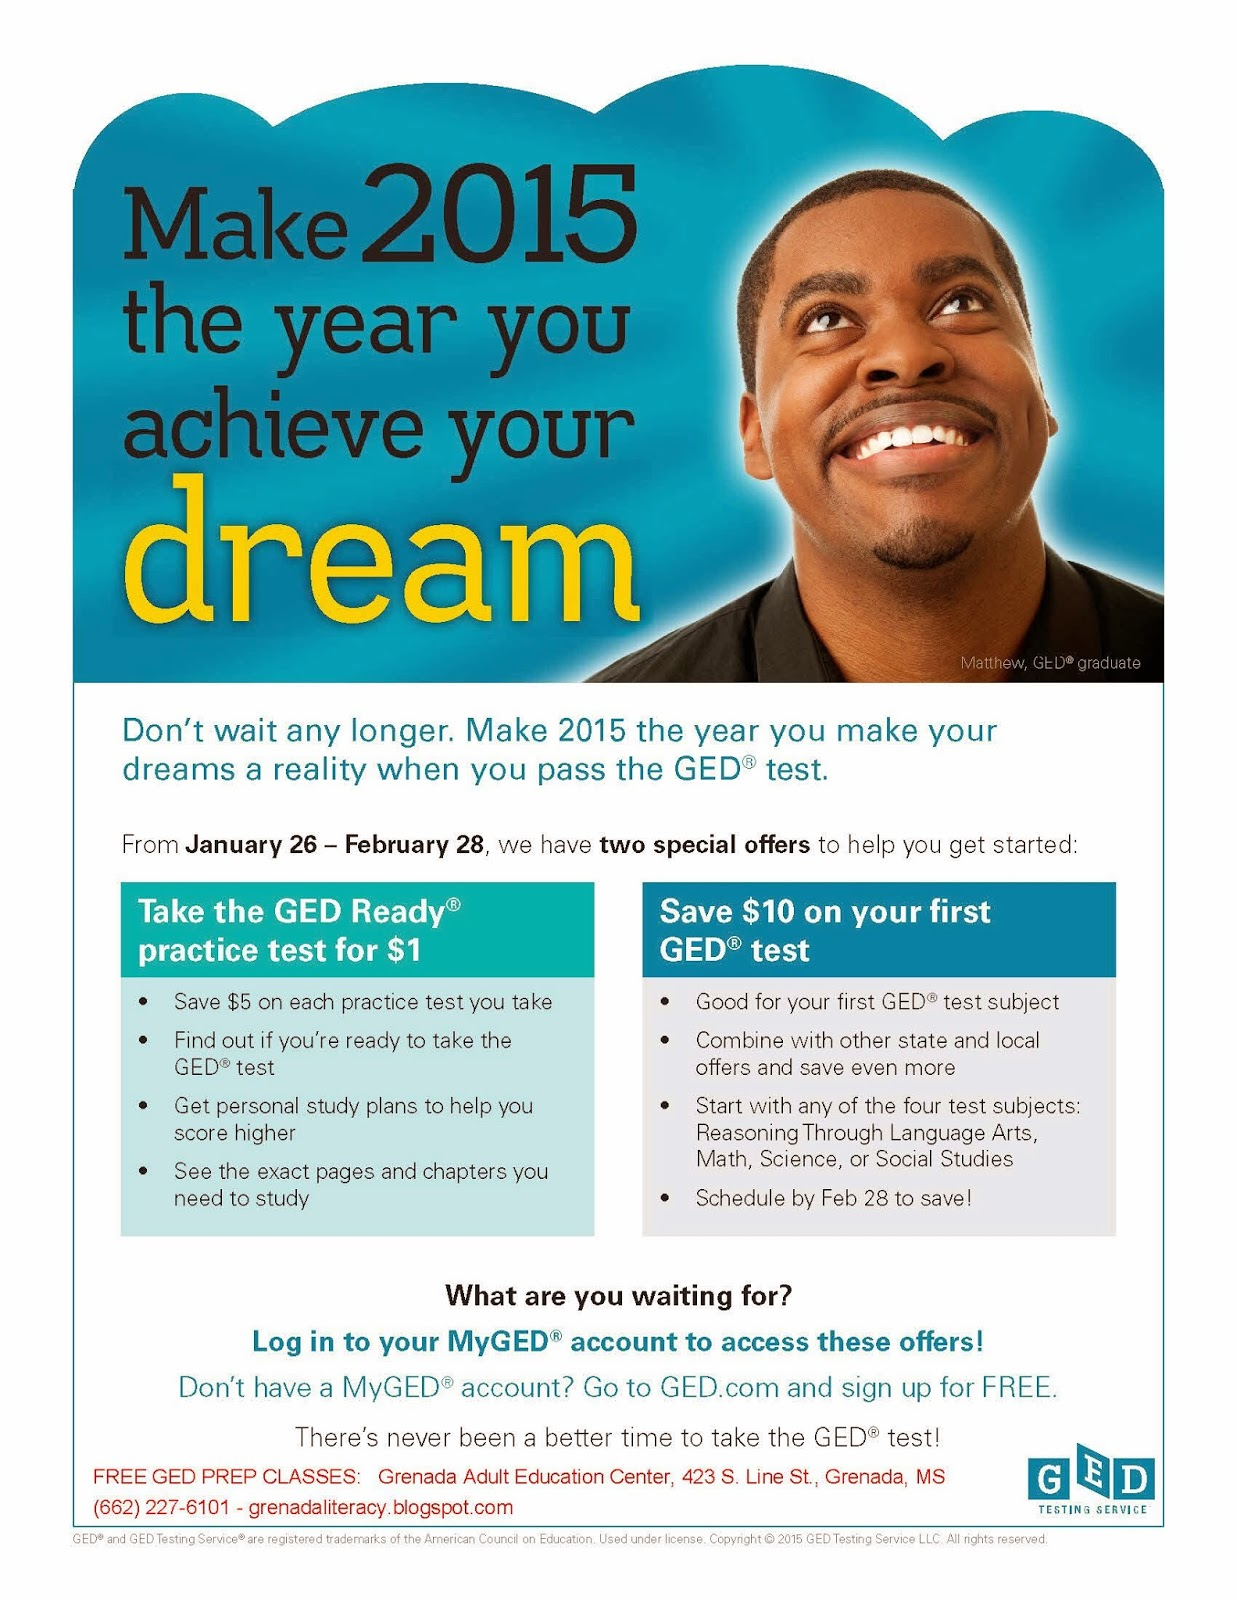 Grenada League For Adult Development Glad Ged Discounts Available Through Feb 28th